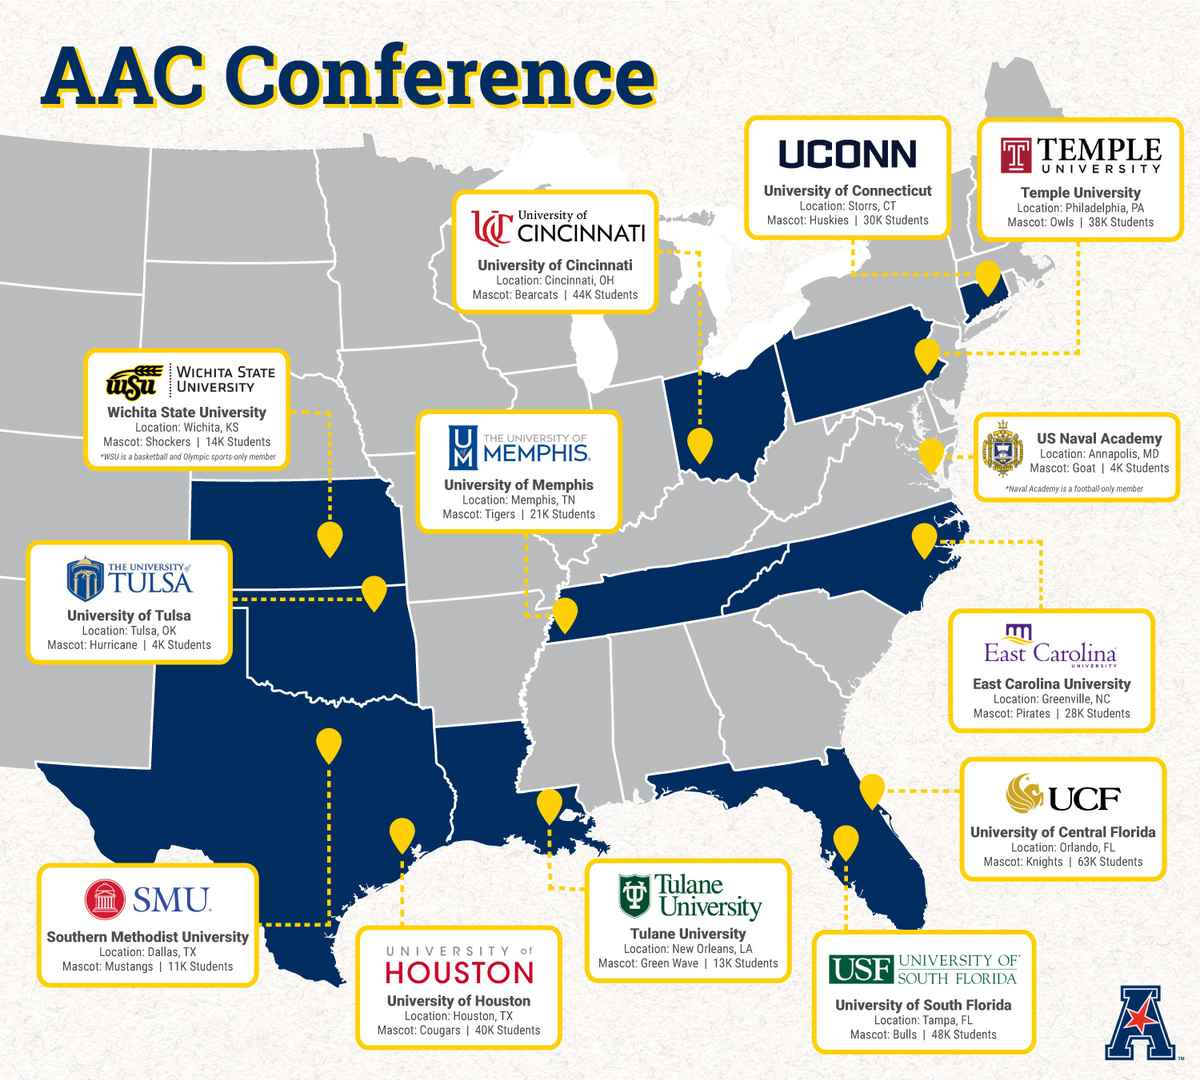 AAC Conference Map By School